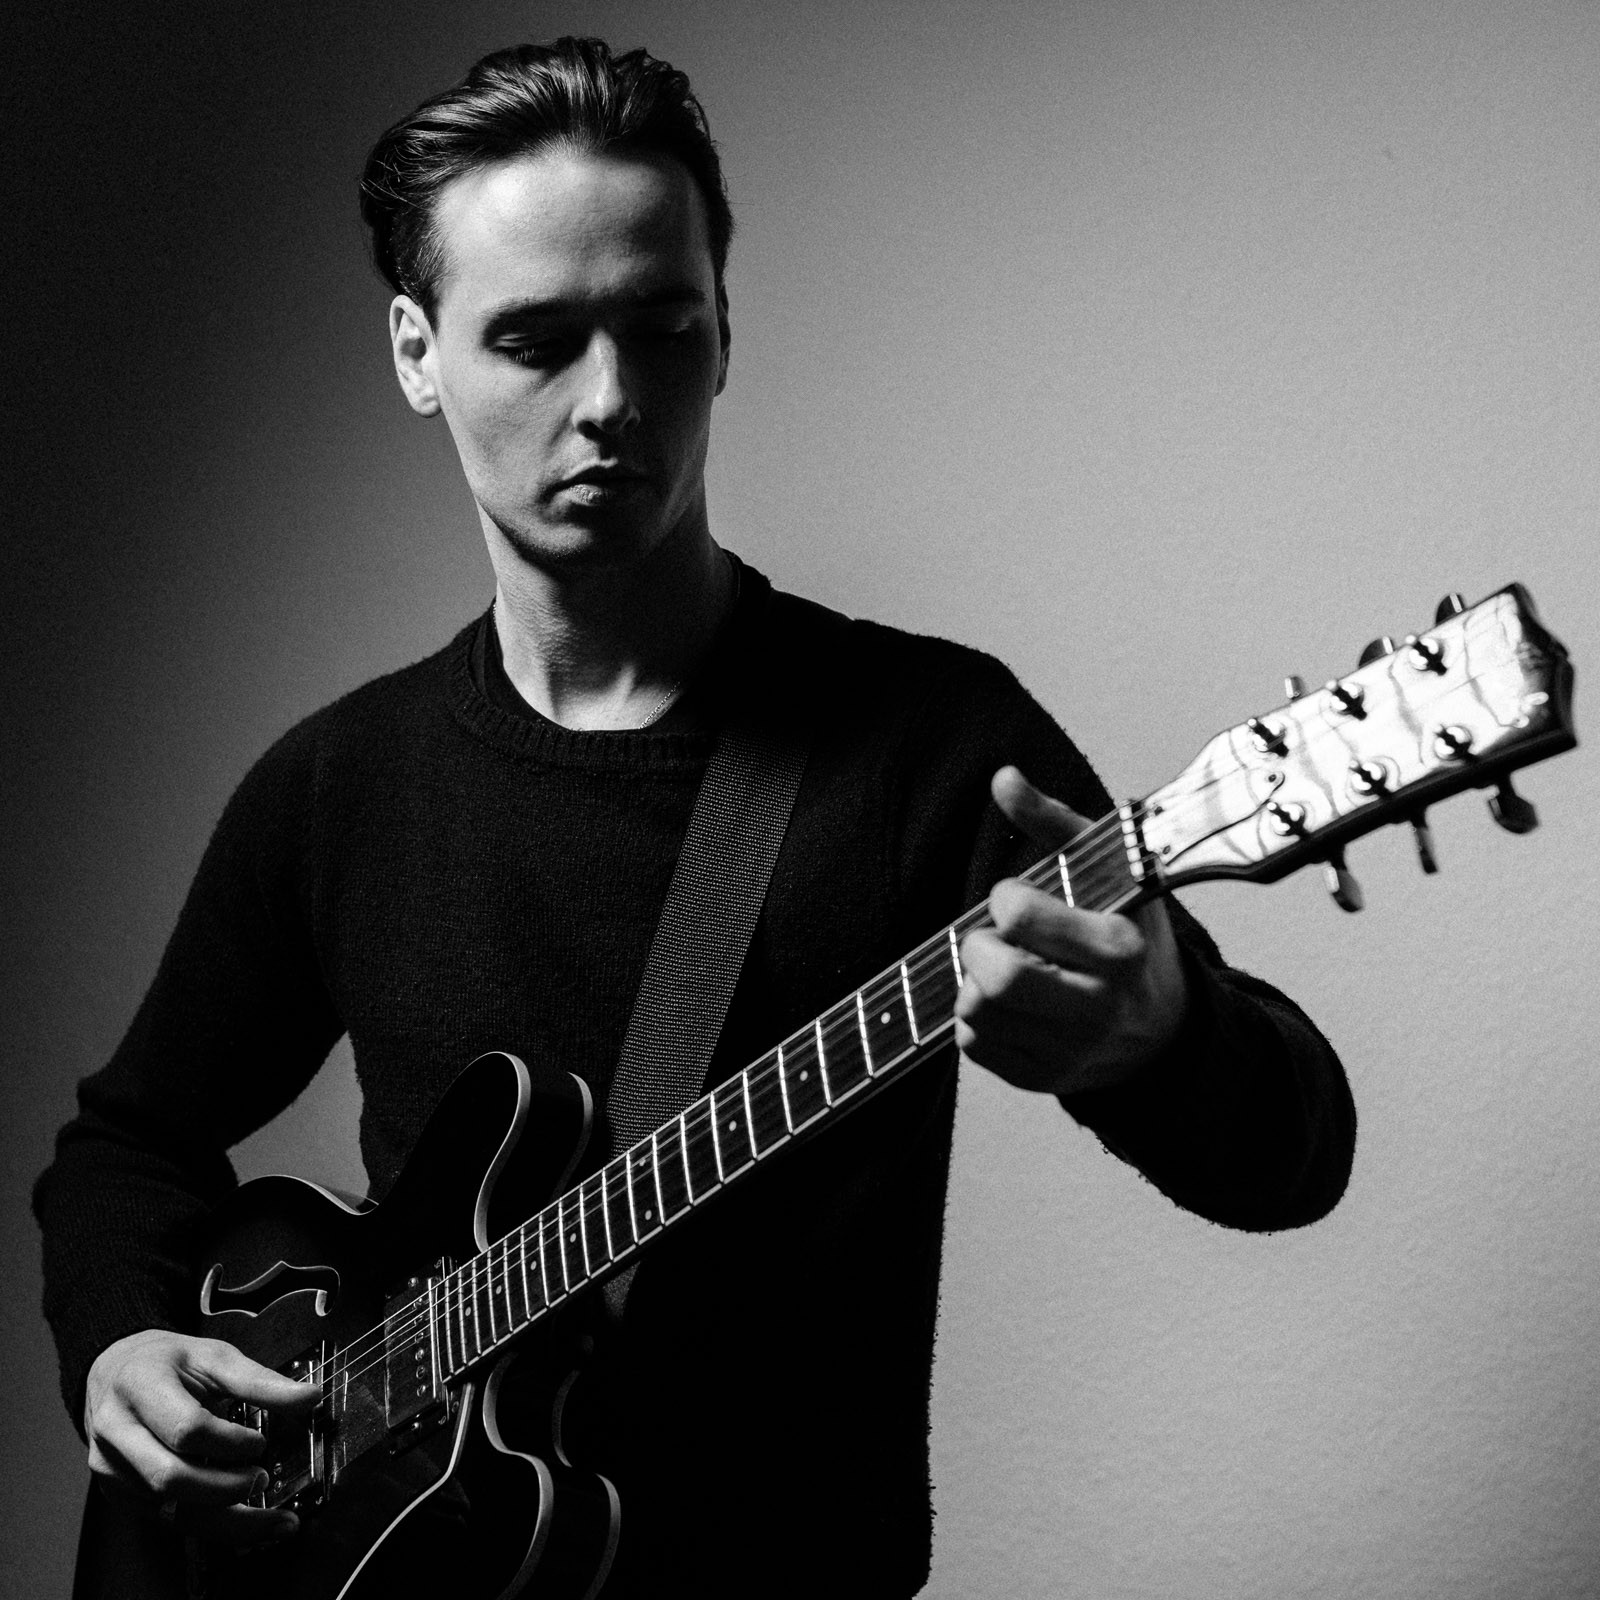 guitar musician black and white portrait shadow